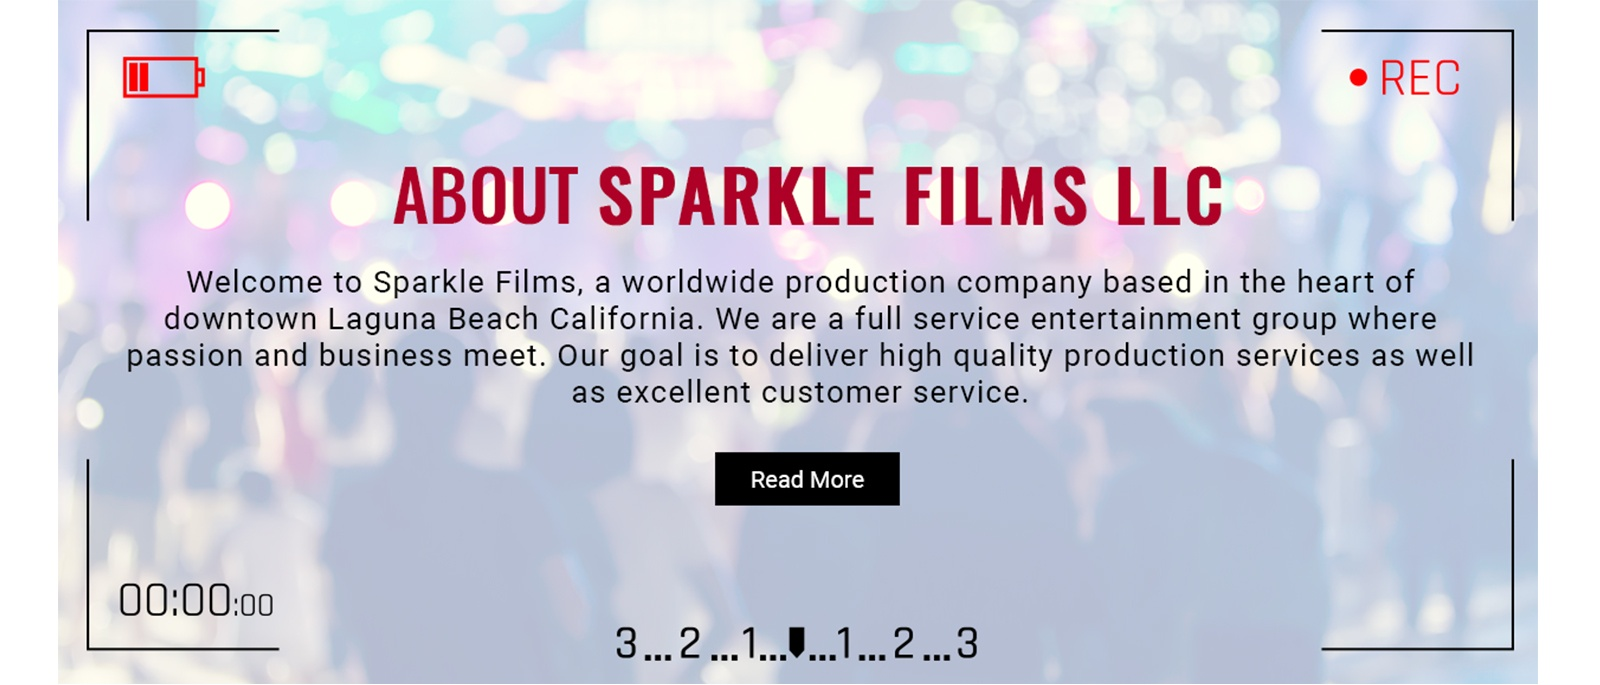 About Sparkle Films LLC - Video Production Company Orange County by Sparkle Films LLC